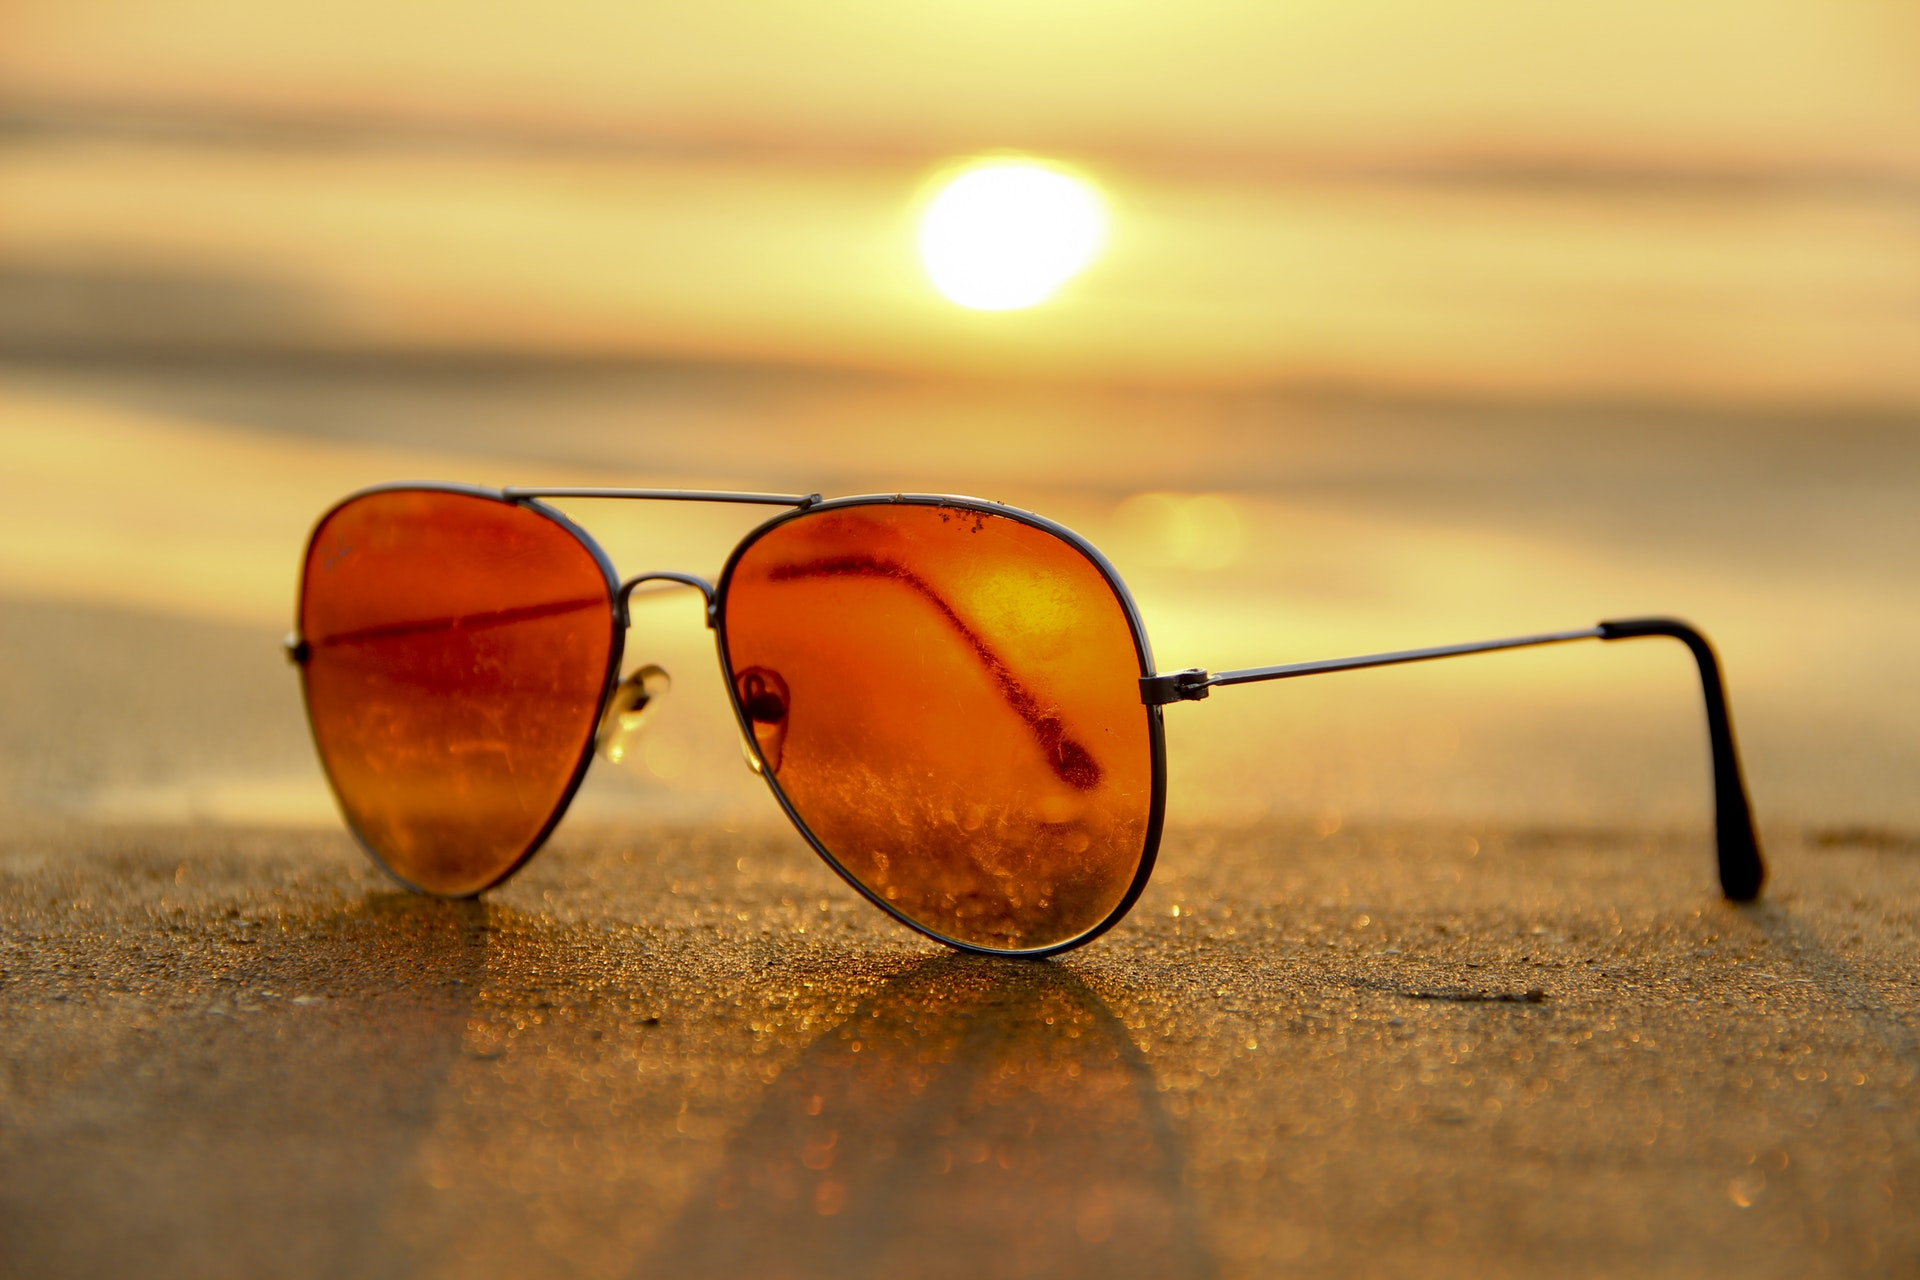 Summer sunset & sunglasses